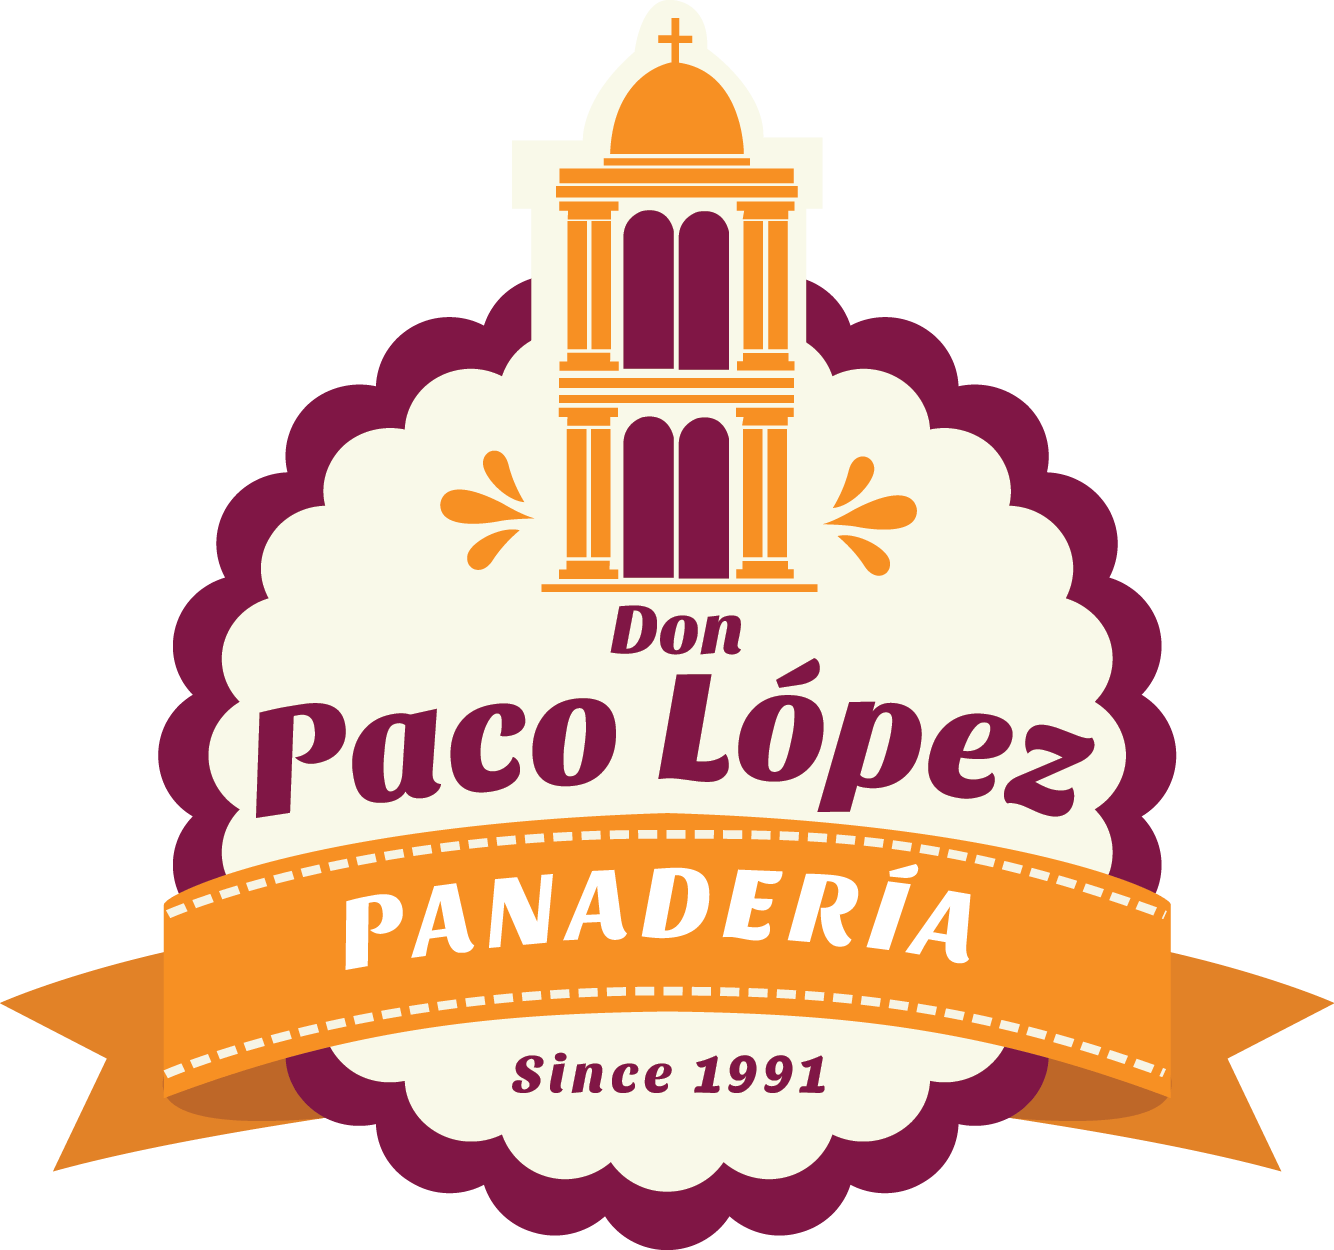 Don Paco Lopez